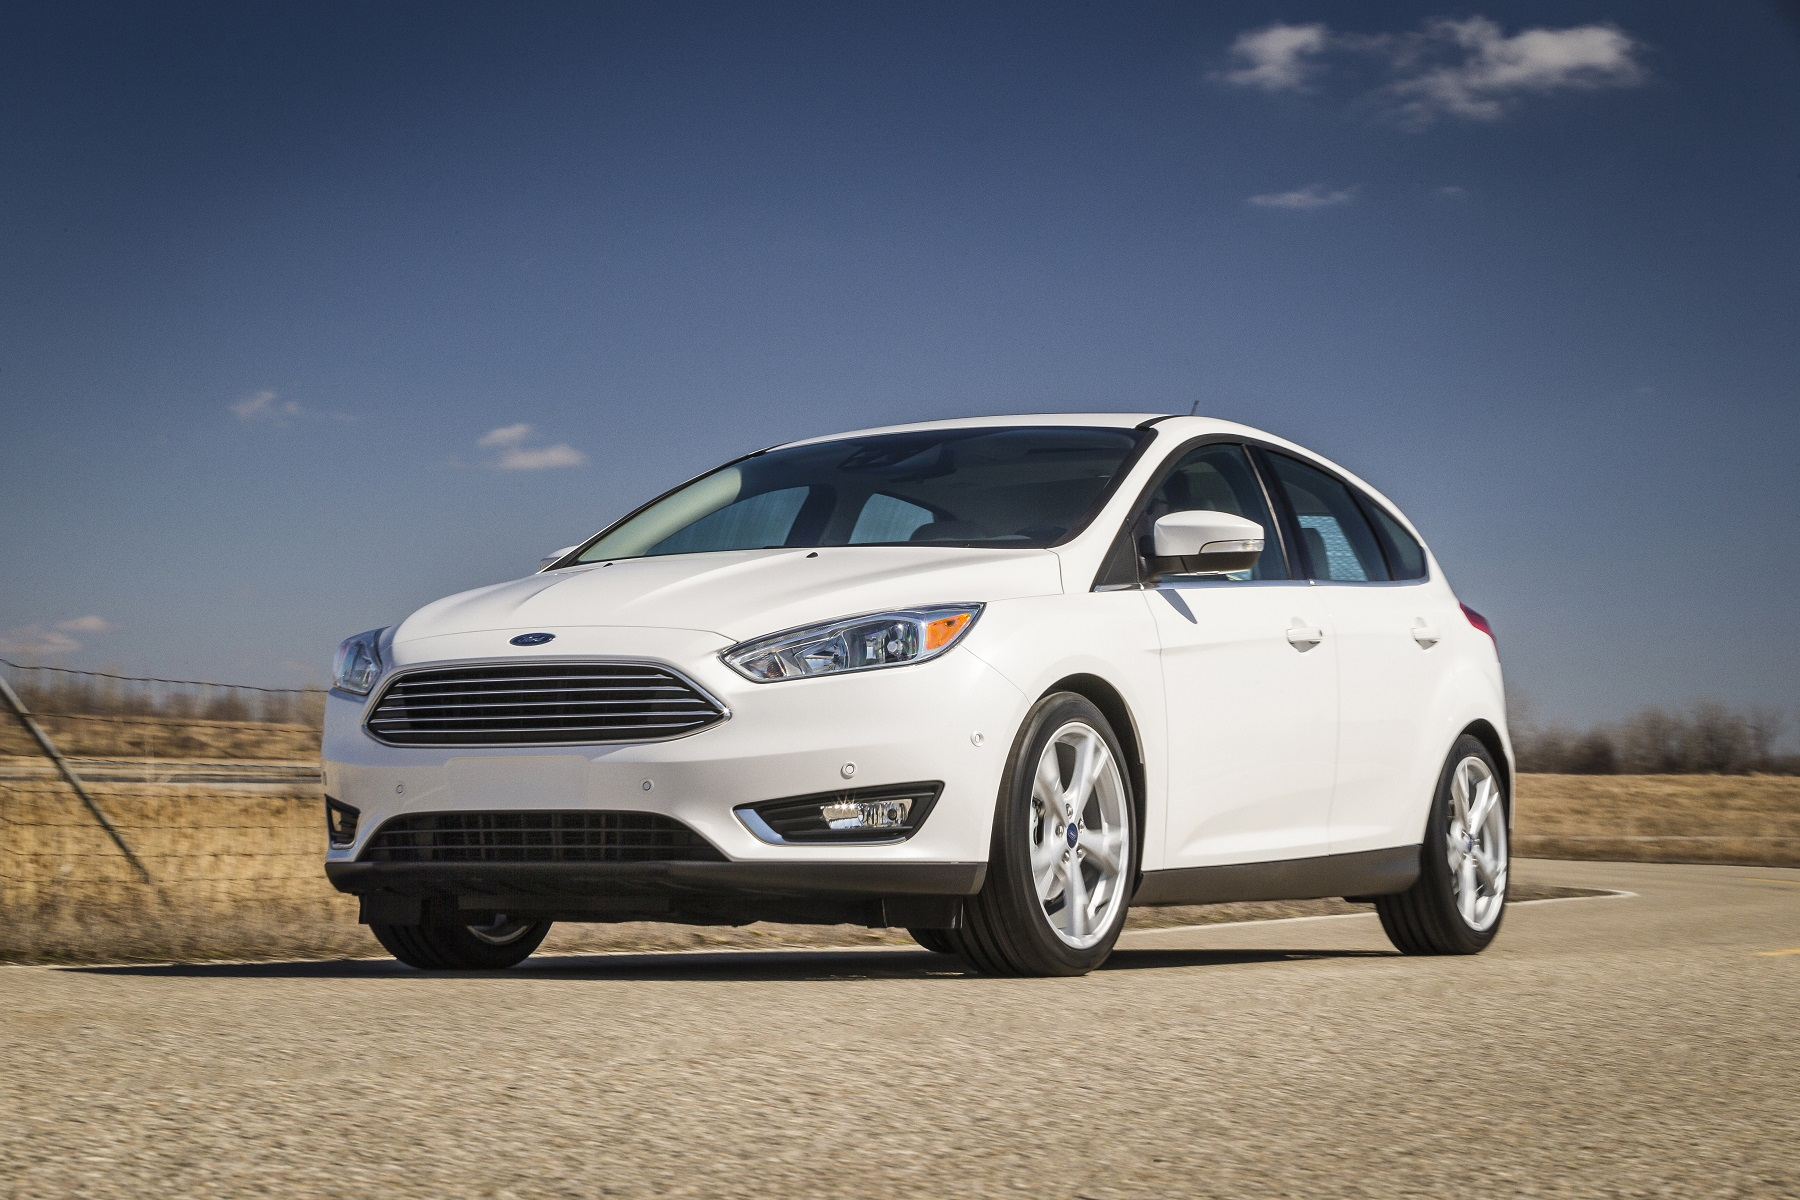 Ford Focus: Uncommon compact car